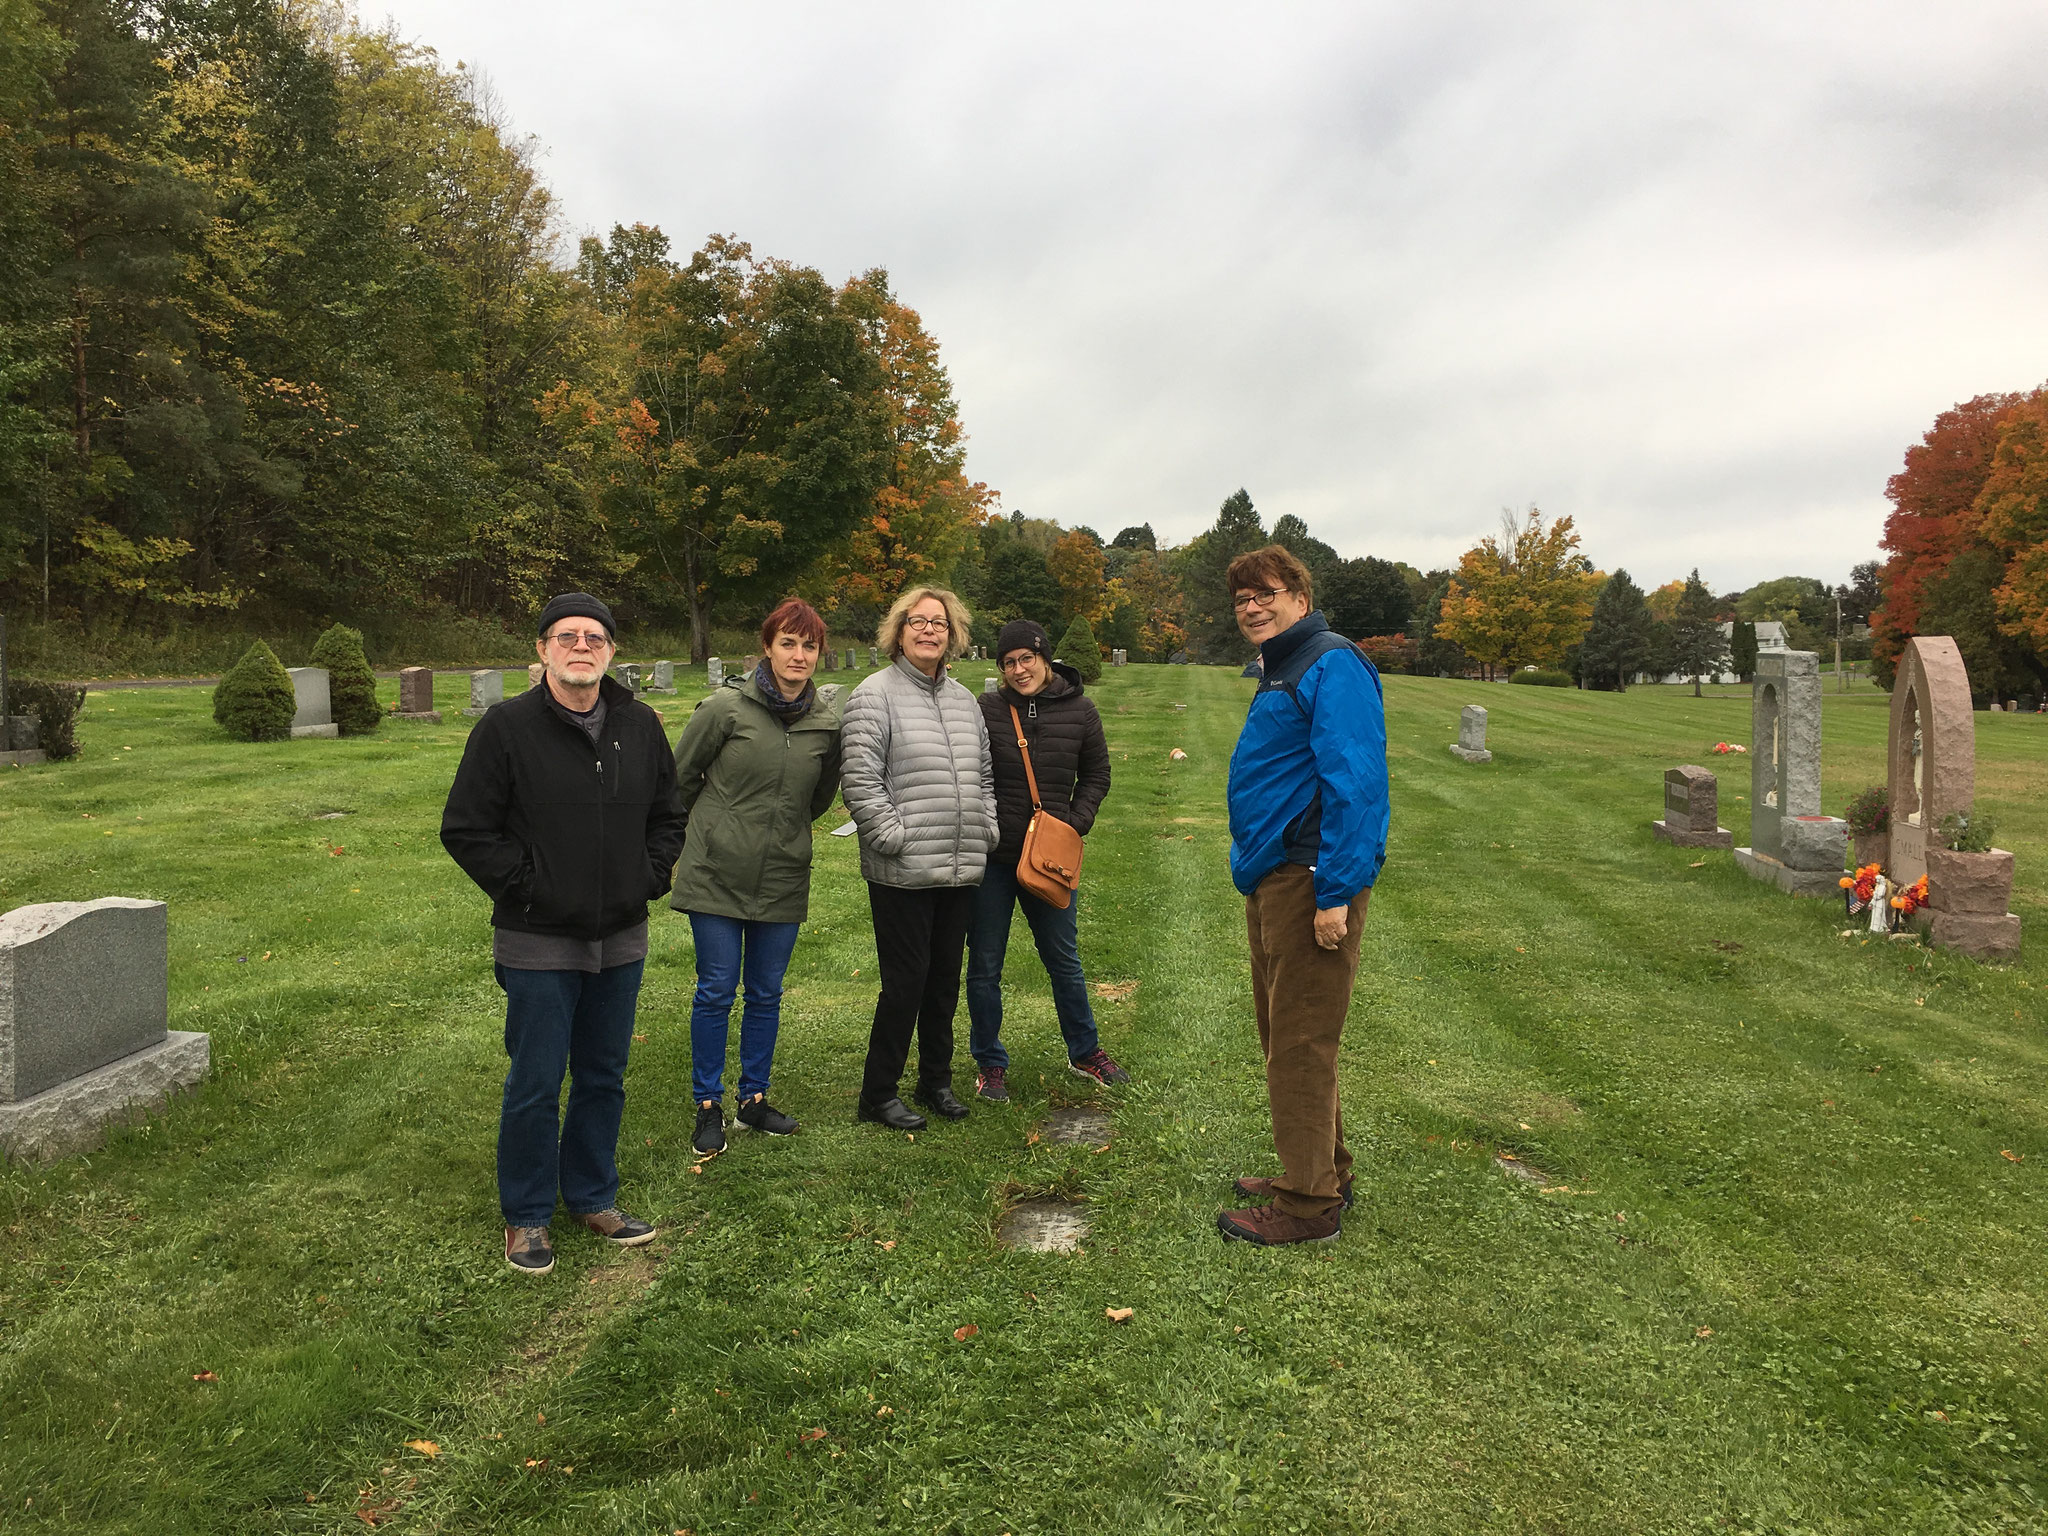 Jerry, Wendy, Jan, Emily, & John at Mayme & Stanley Baldyga's grave, St. Mary's Cemetery, DeWitt, NY Oct. 2018